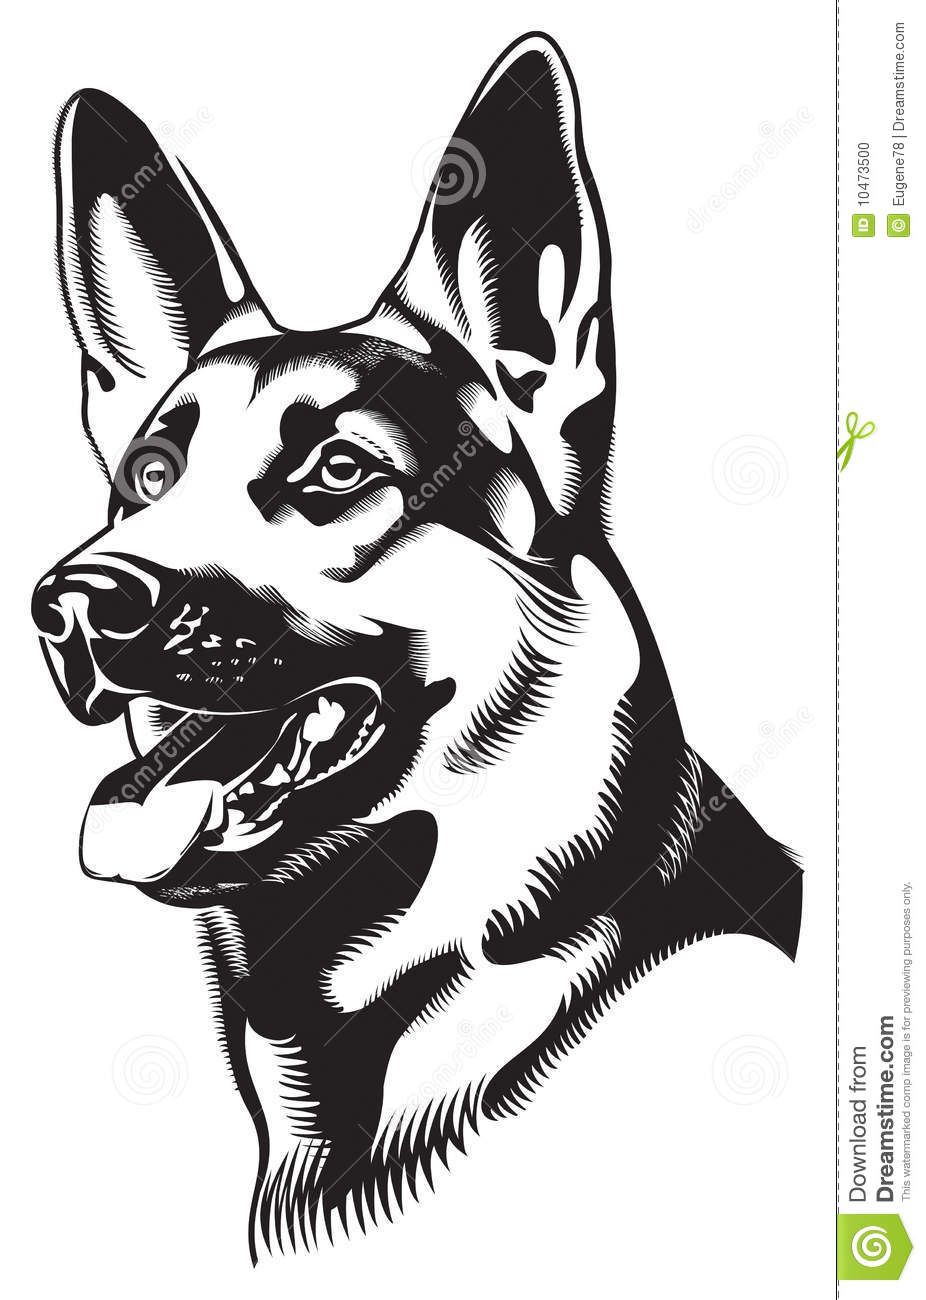 hight resolution of german shepherd dog clipart download